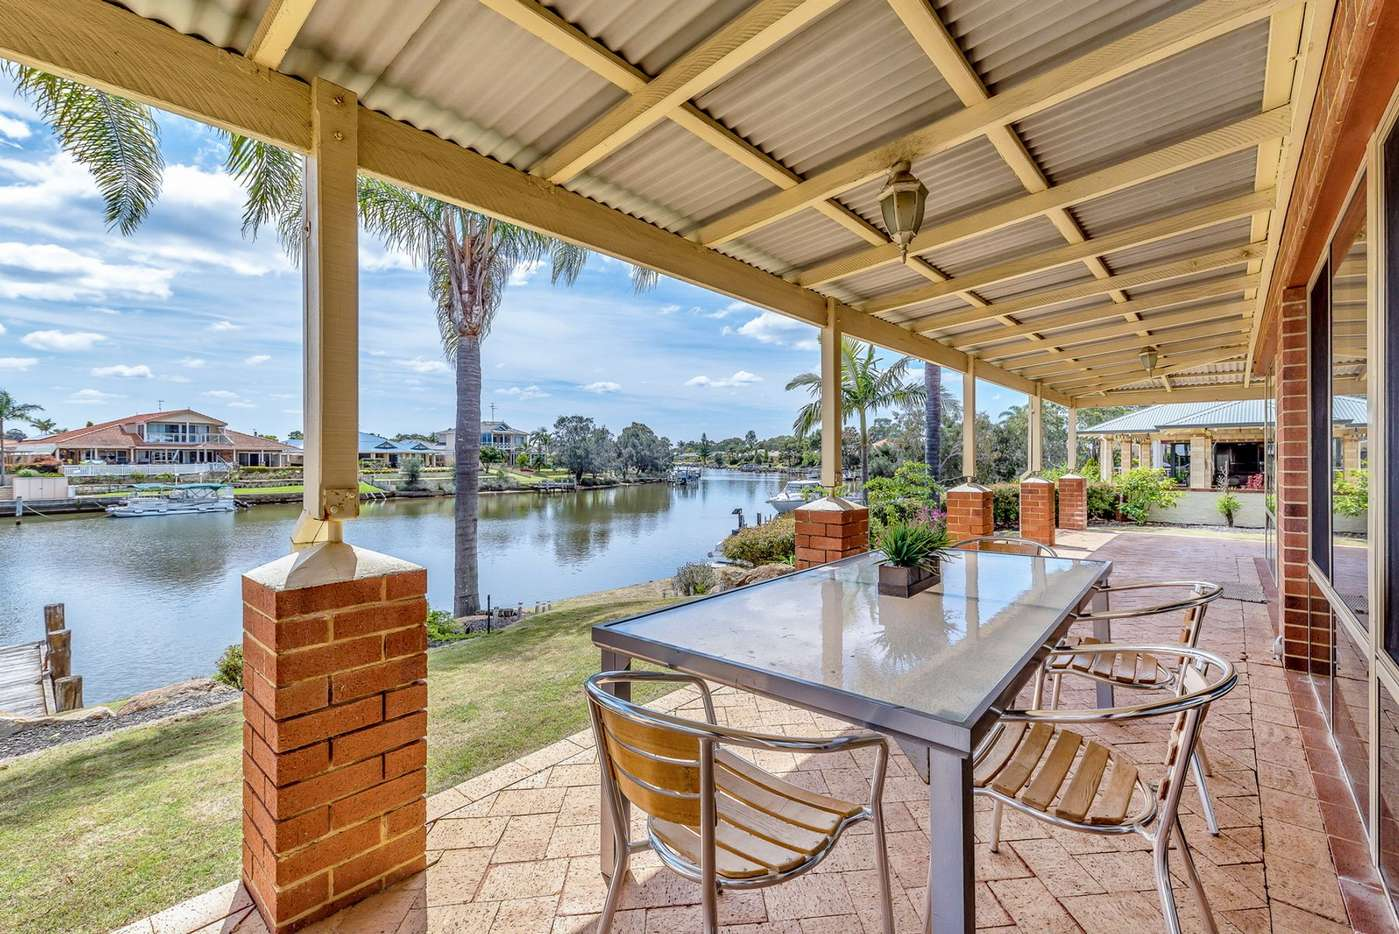 Main view of Homely house listing, 13 Park Way, South Yunderup, WA 6208